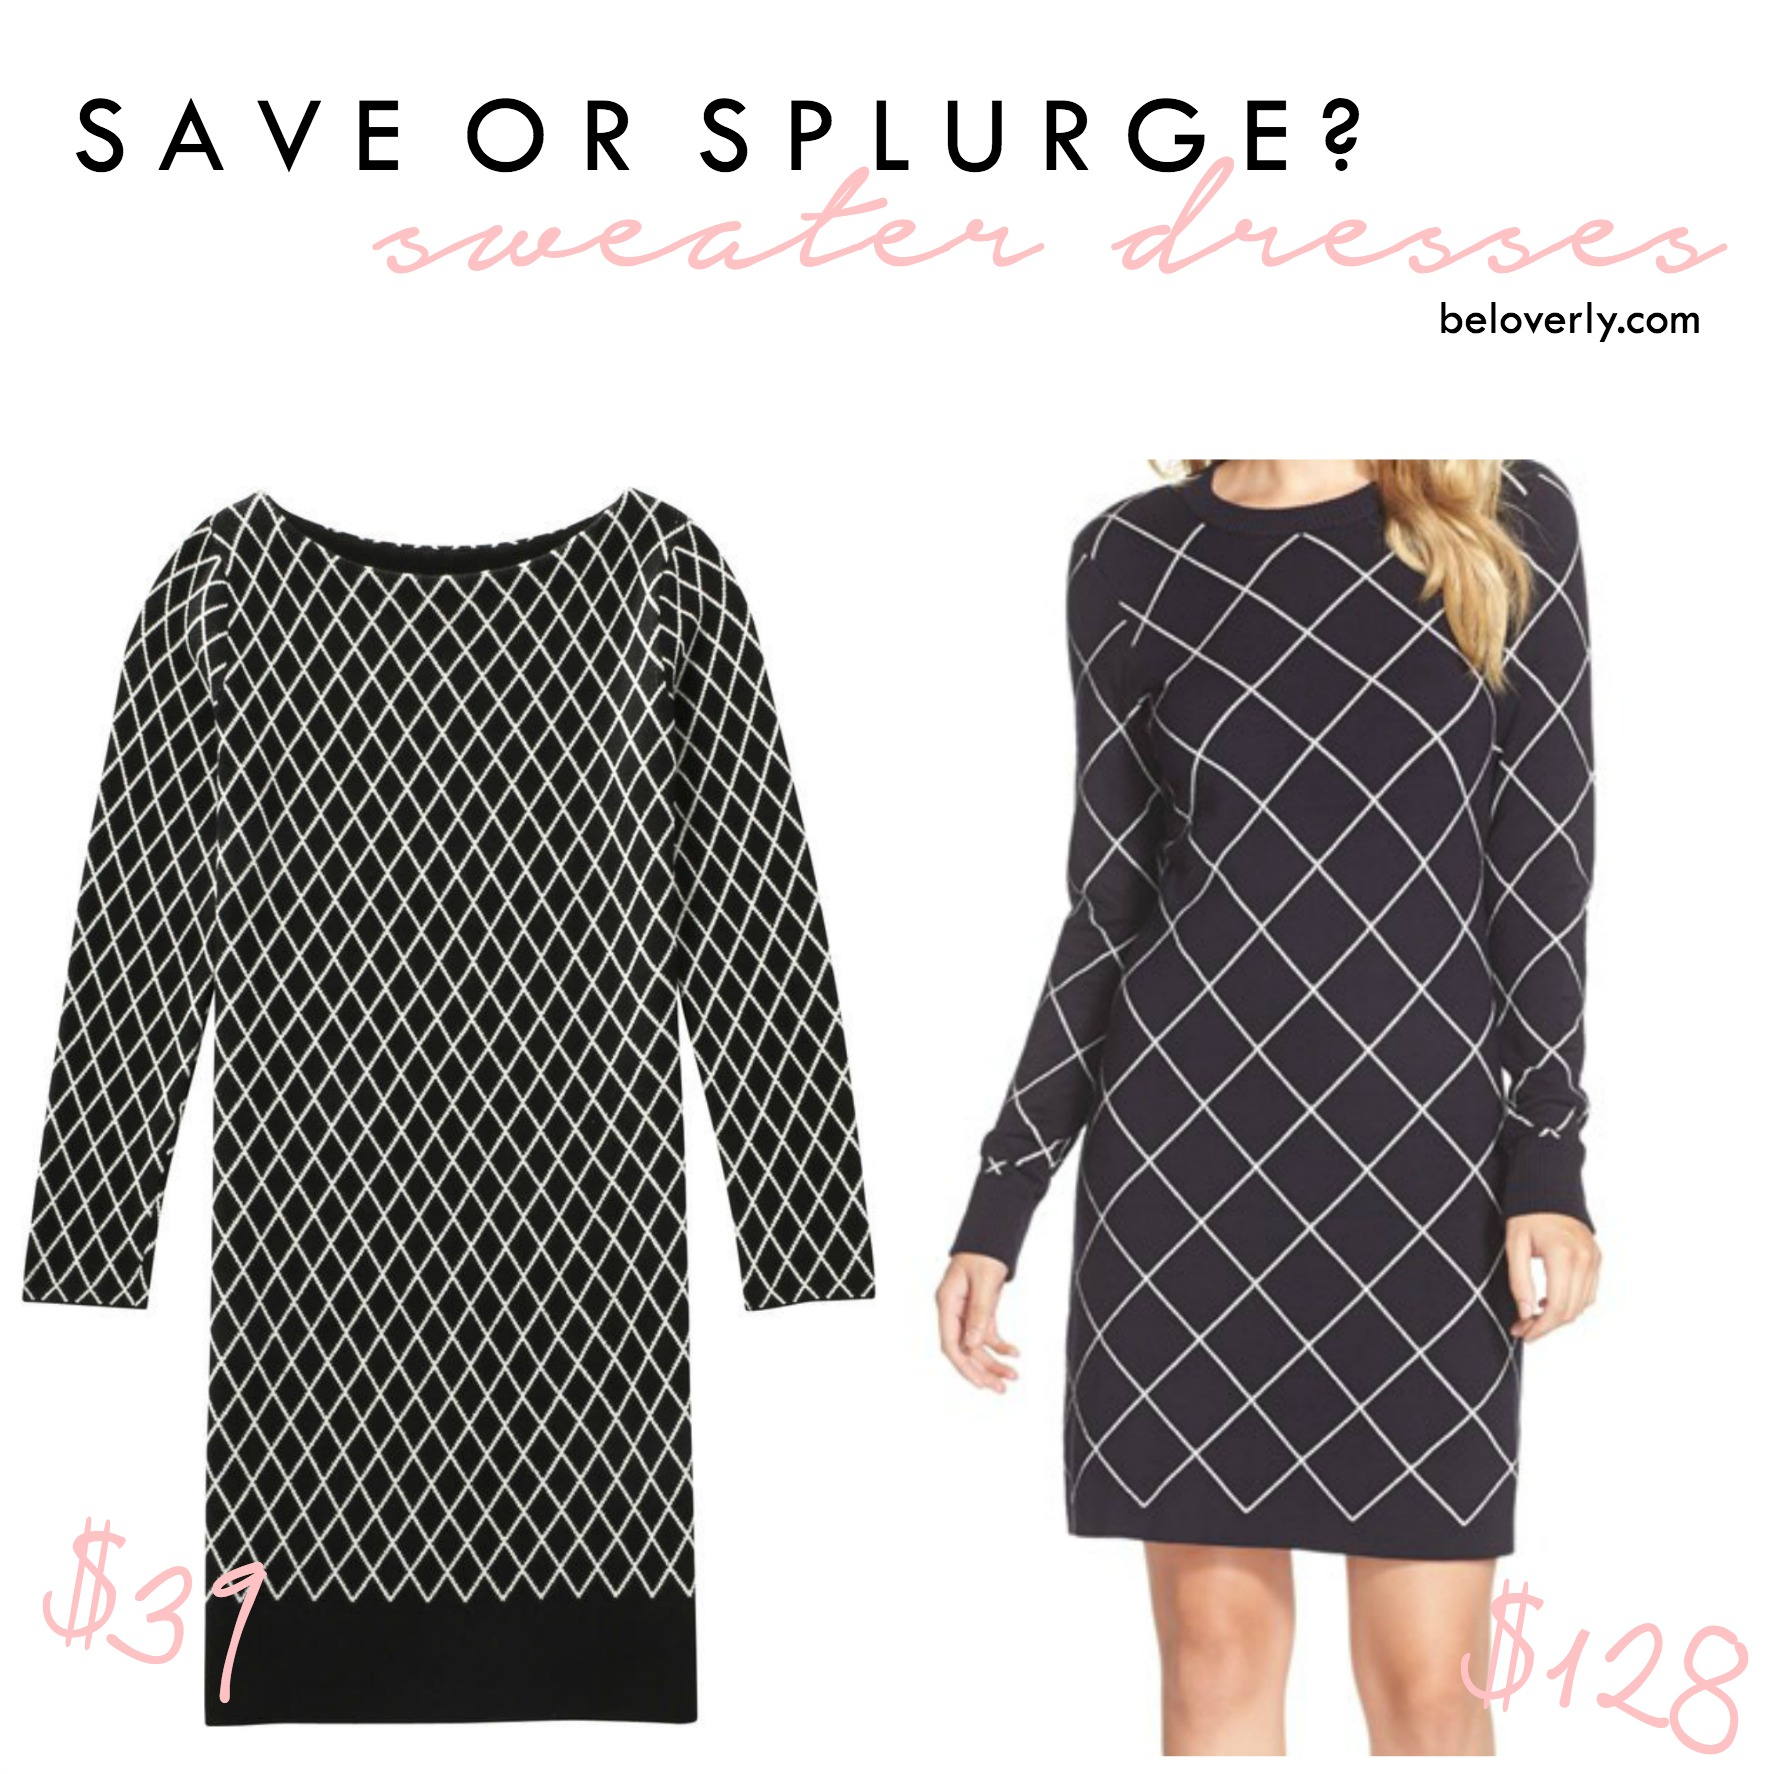 saveorsplurge-sweaterdresses